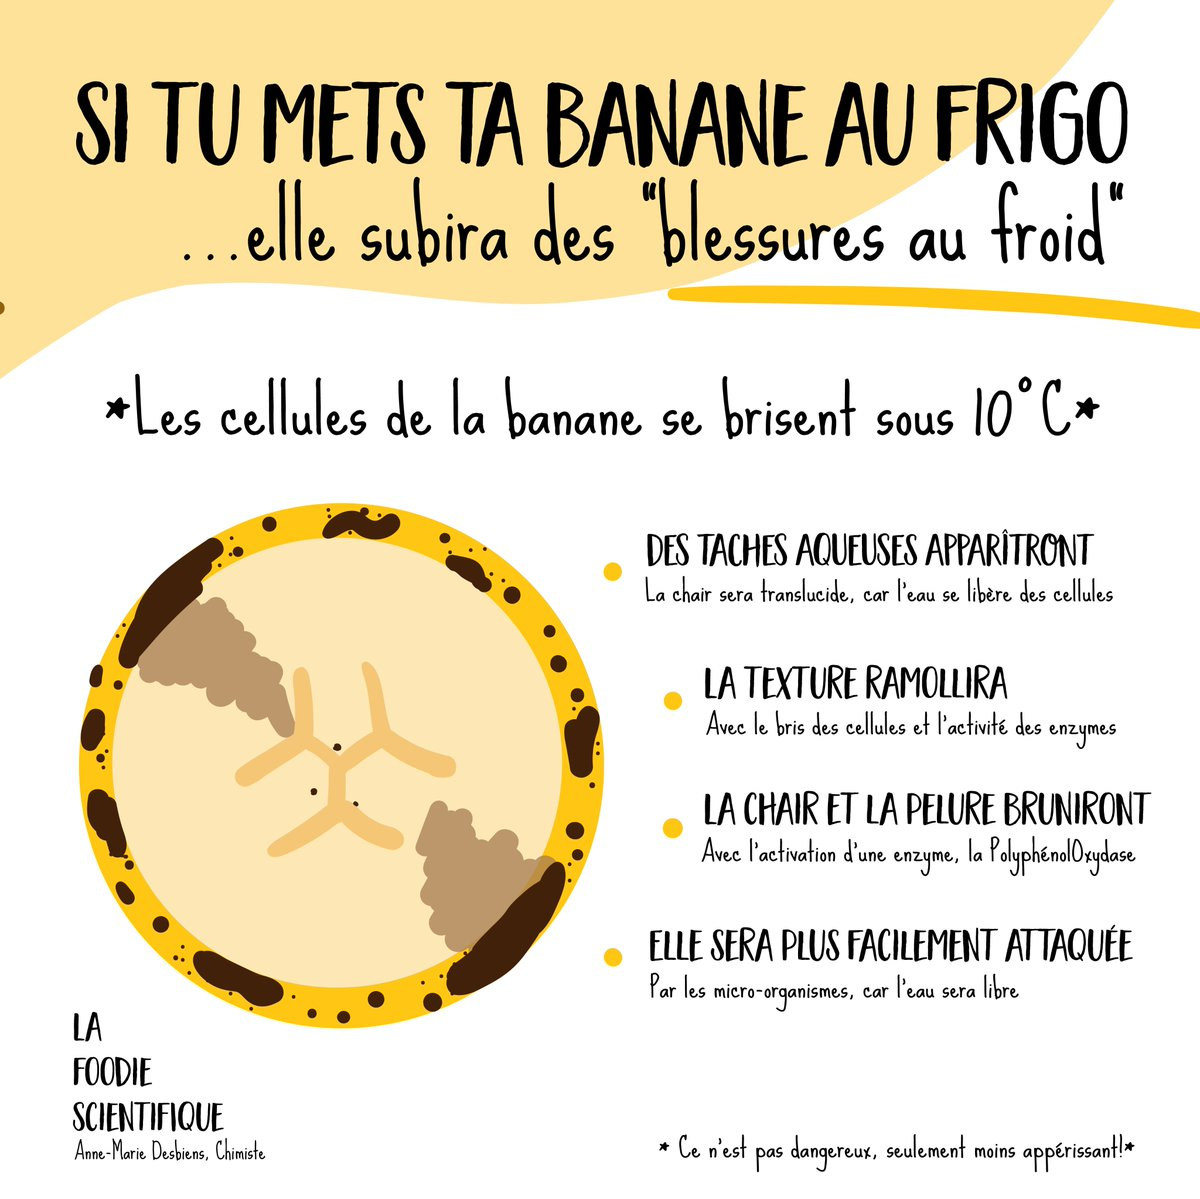 La banane préfère rester au chaud! #Science #Nutrition #Food #Foodie #foodbloggers<br>http://pic.twitter.com/0k7DhmYFro